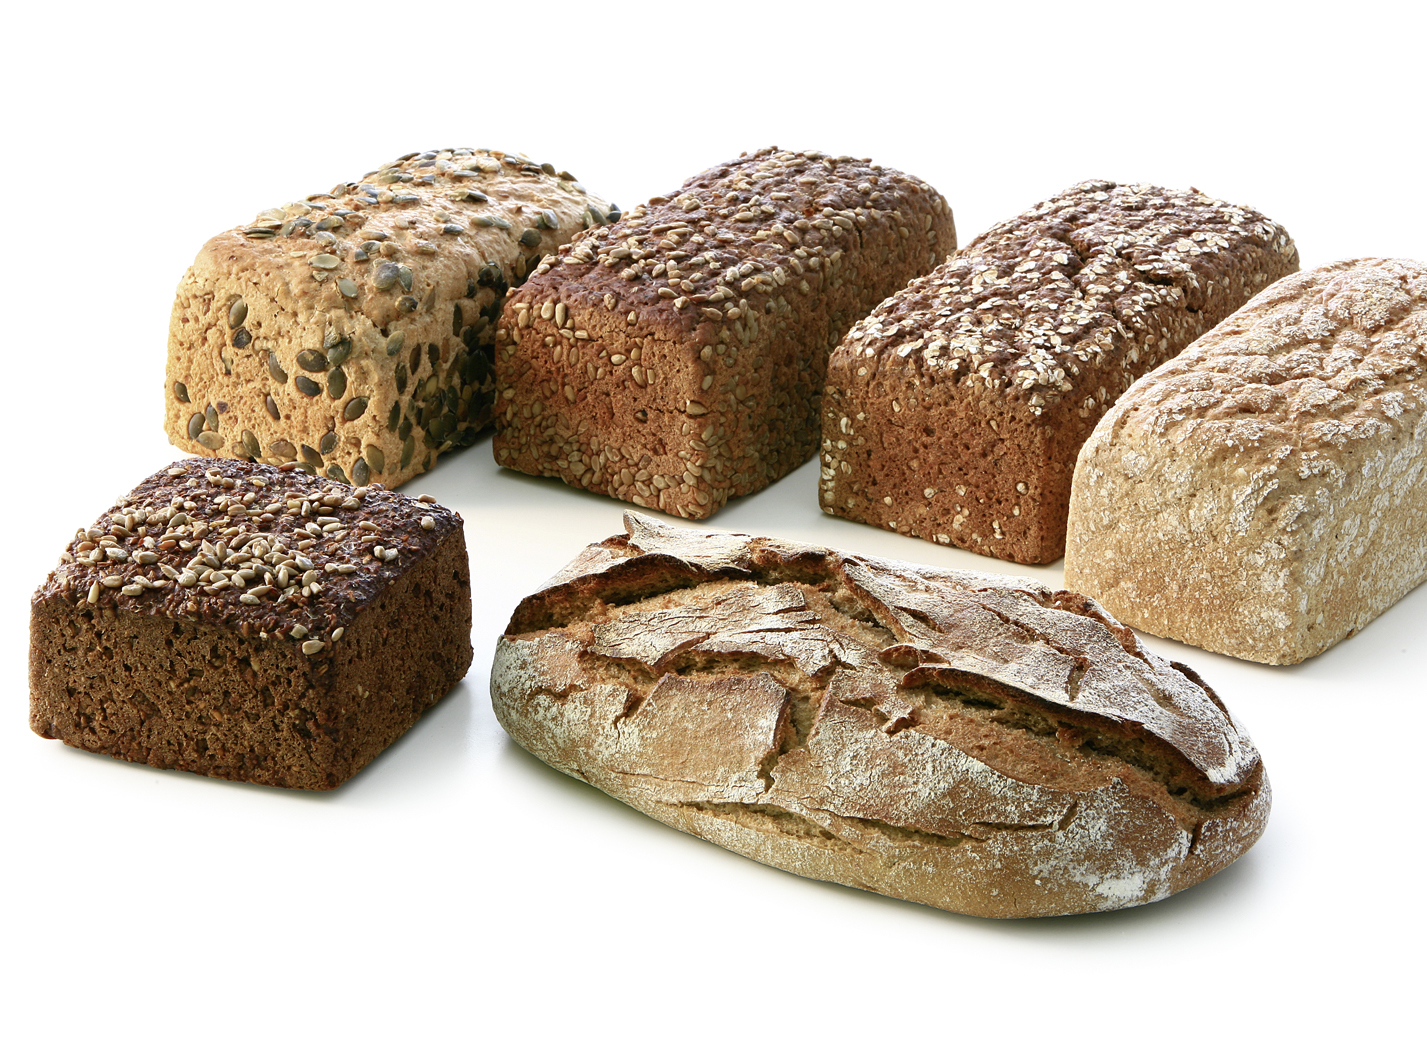 Bread Assortment - Mix of the varieties: 3 wholemeal lumps, 2 crusty breads, 2 potato breads, 2 pumkin seed breads, 2 wholegrain breads, 2 sunflower seed breads